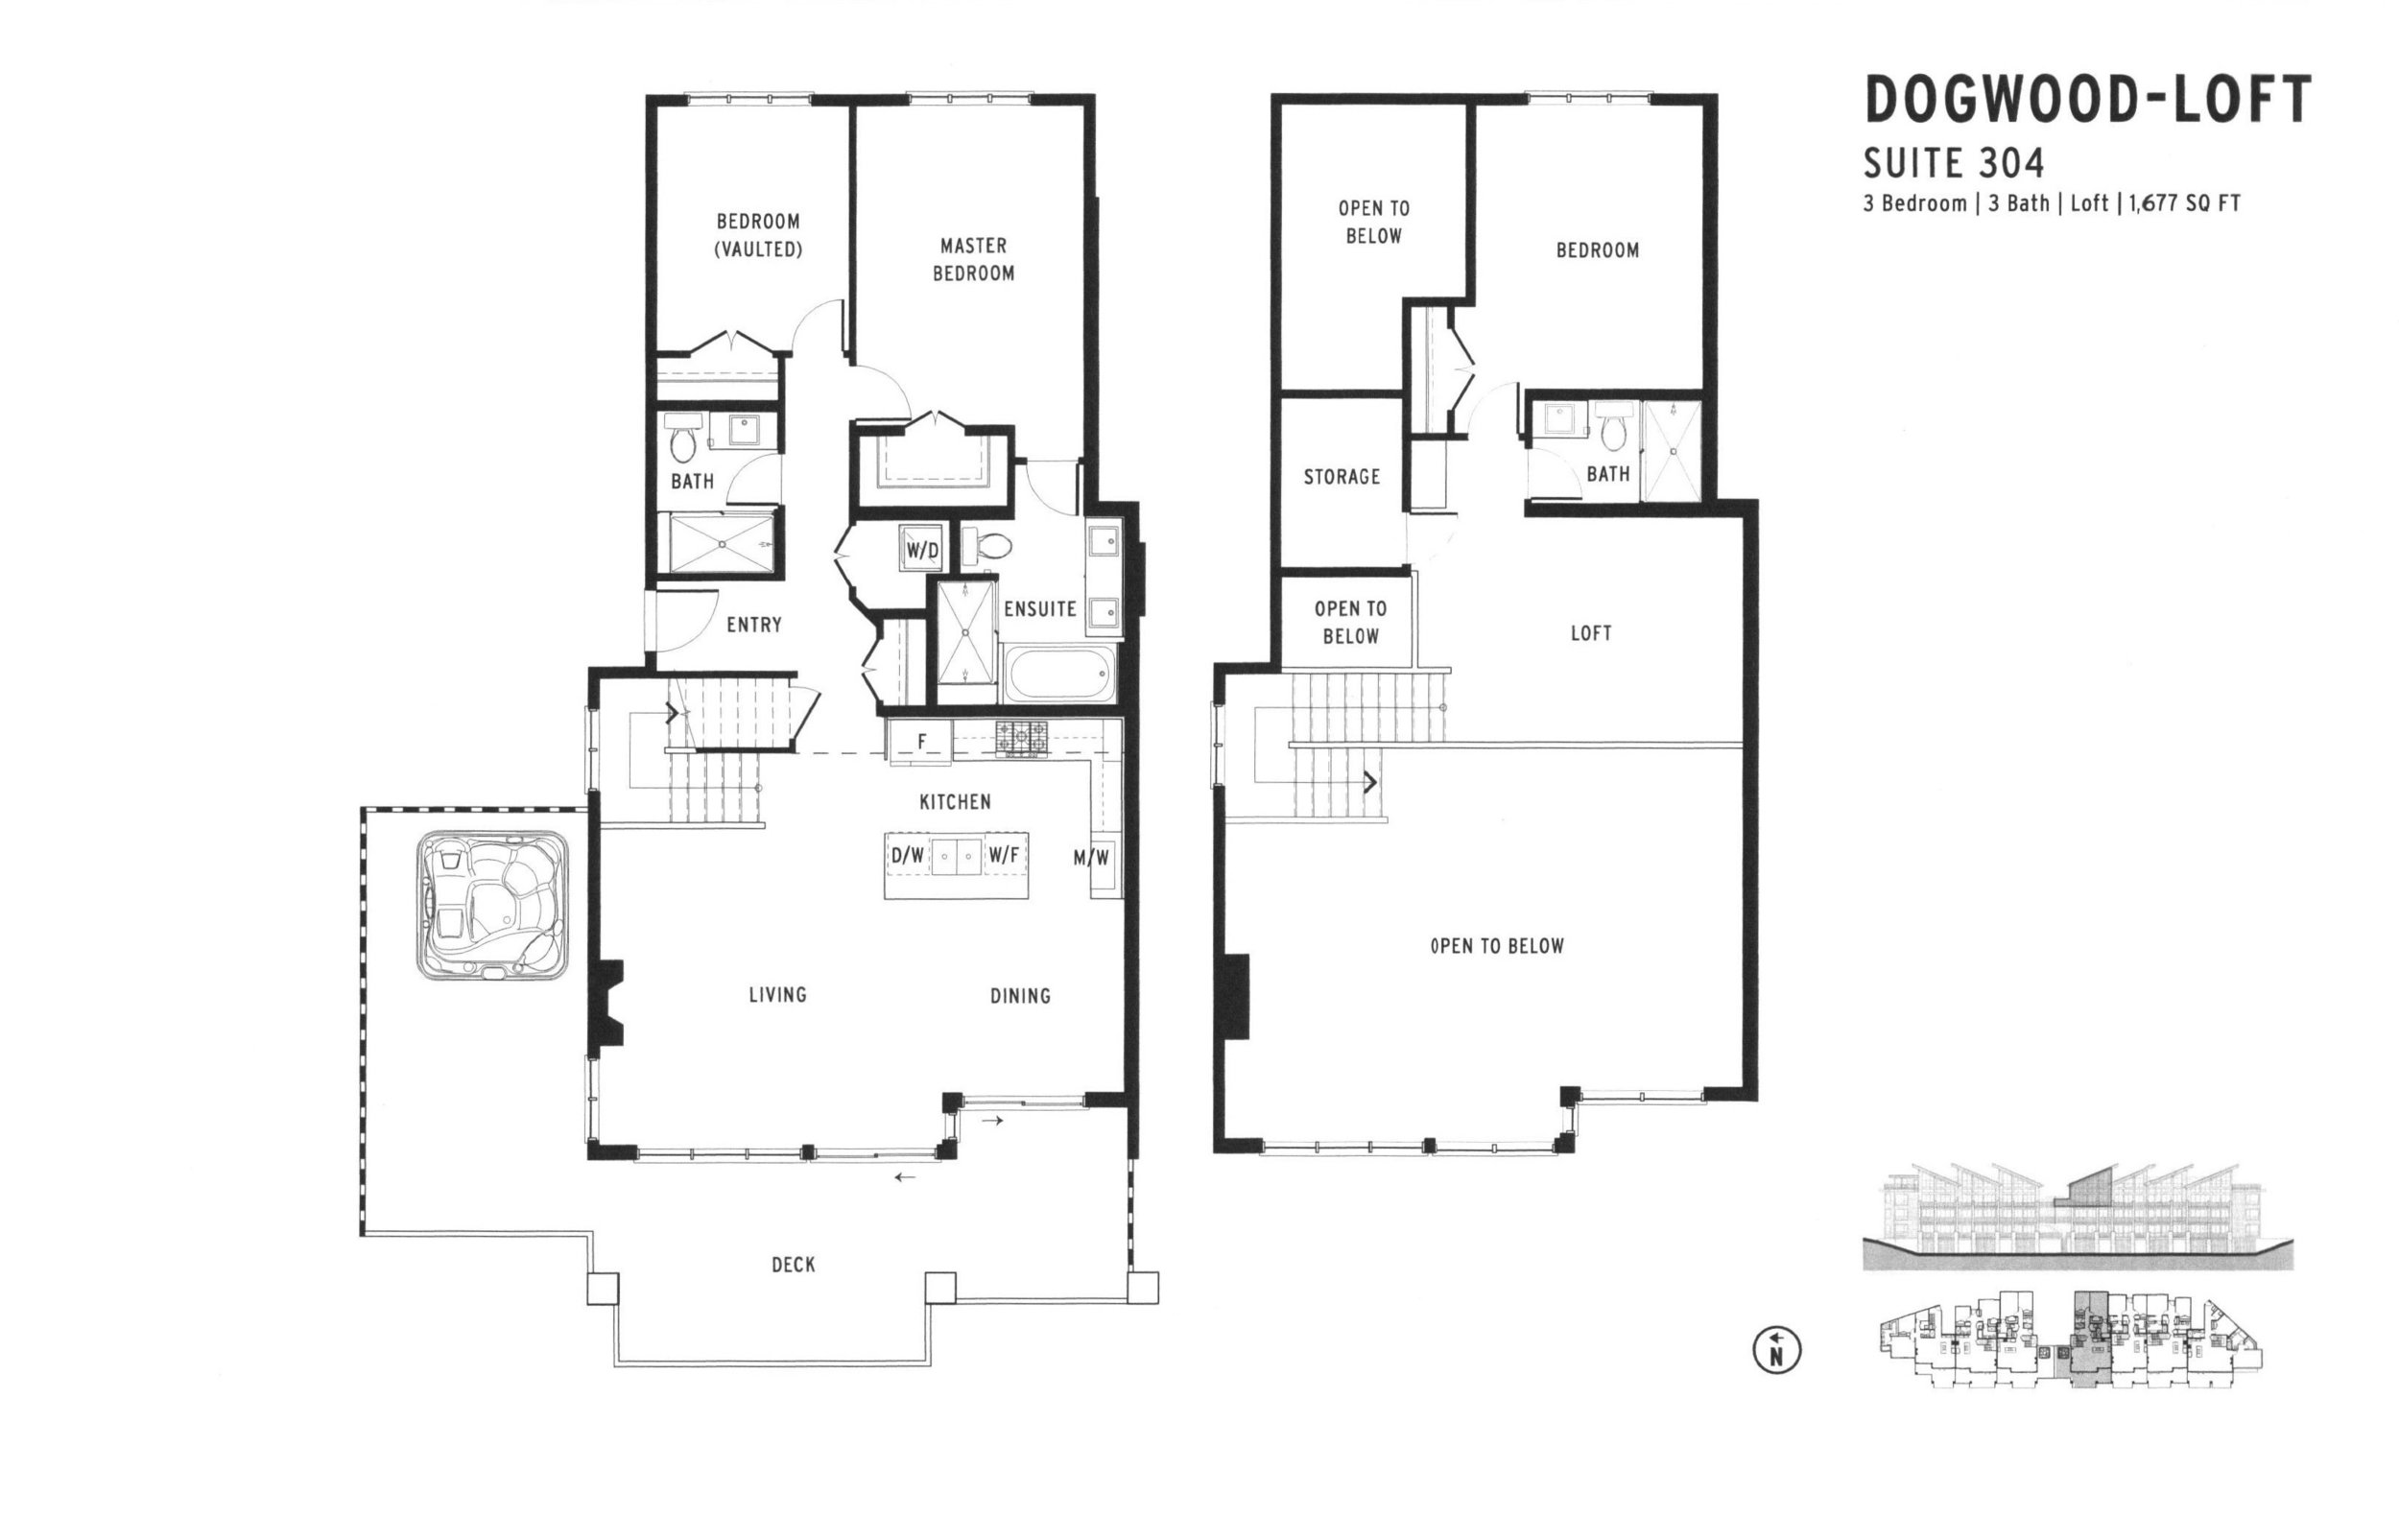 Copy of 304 - DOGWOOD -LOFT - $ 1,699,900